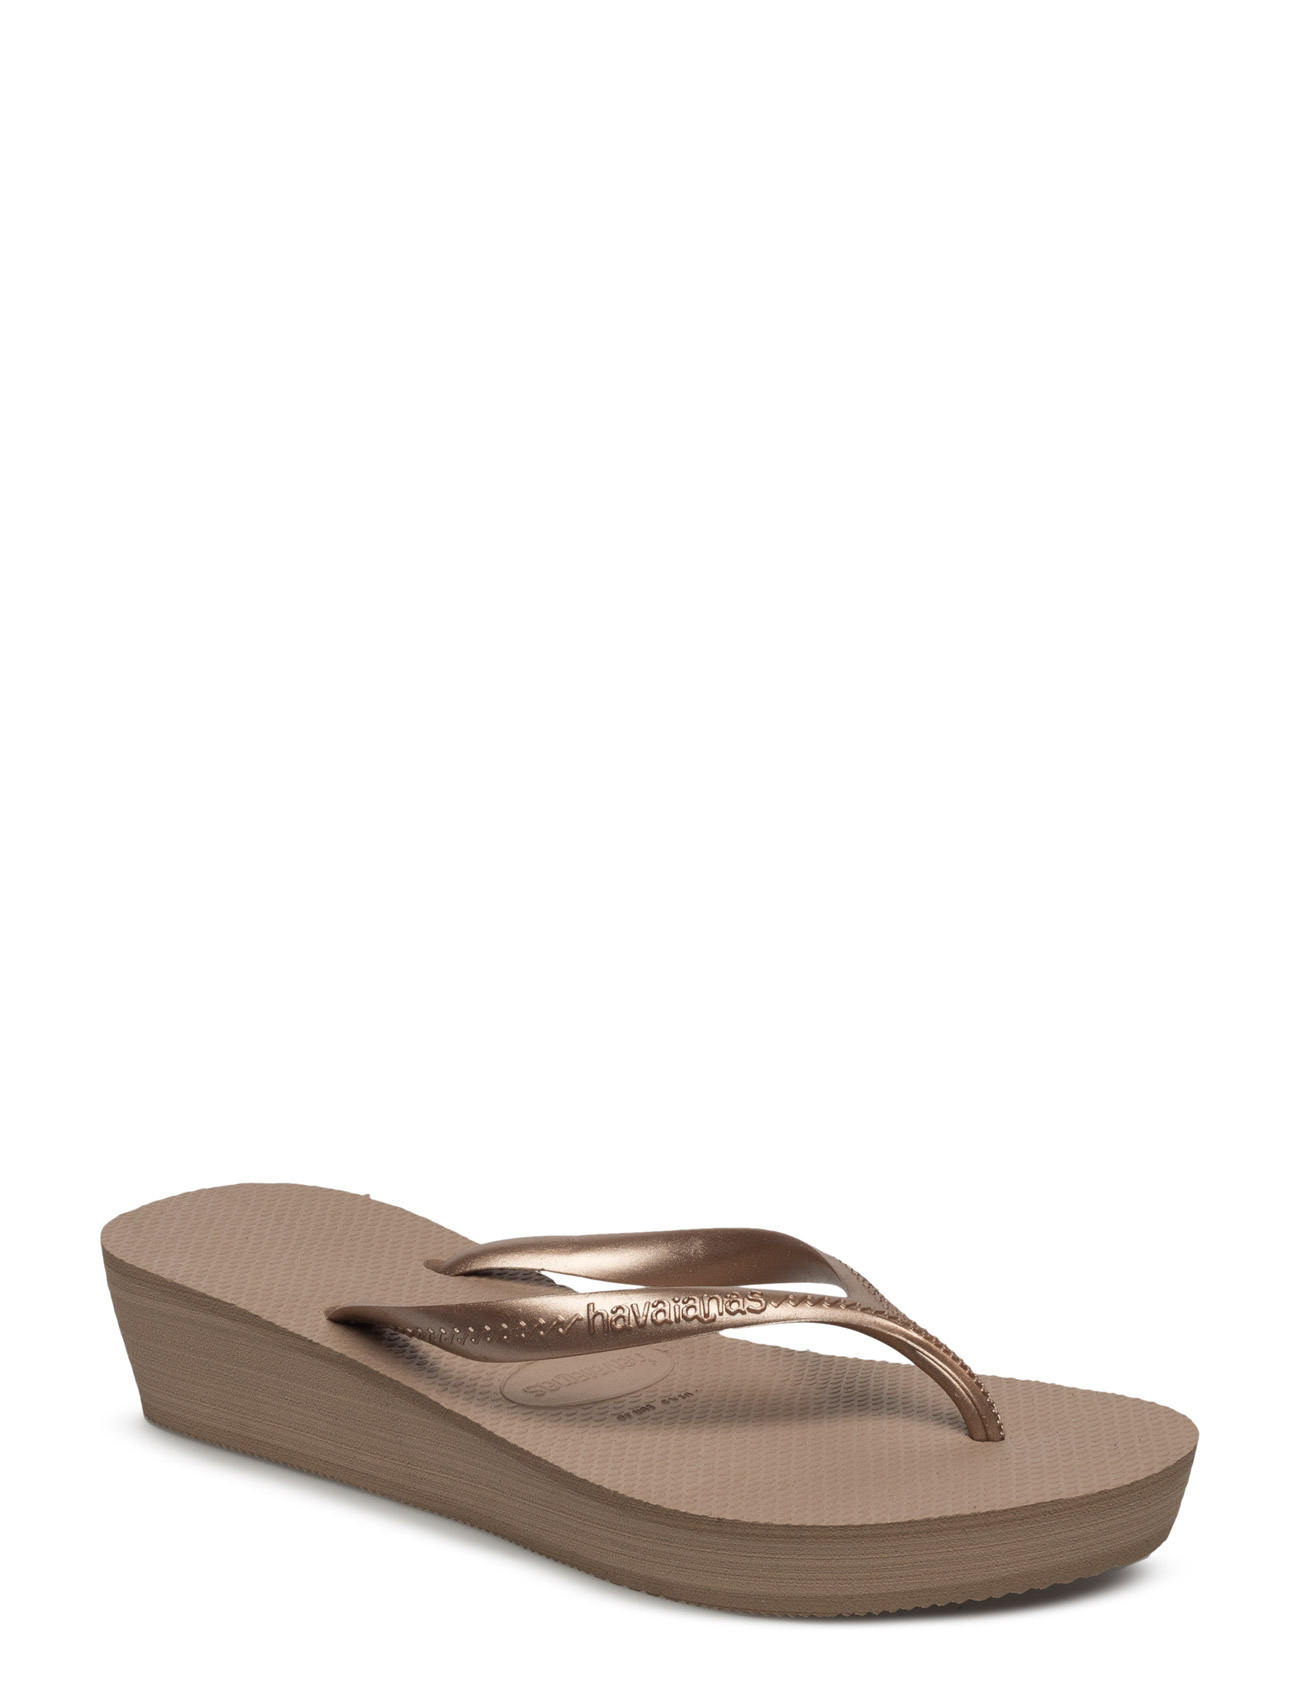 High Light Havaianas Sandaler til Damer i